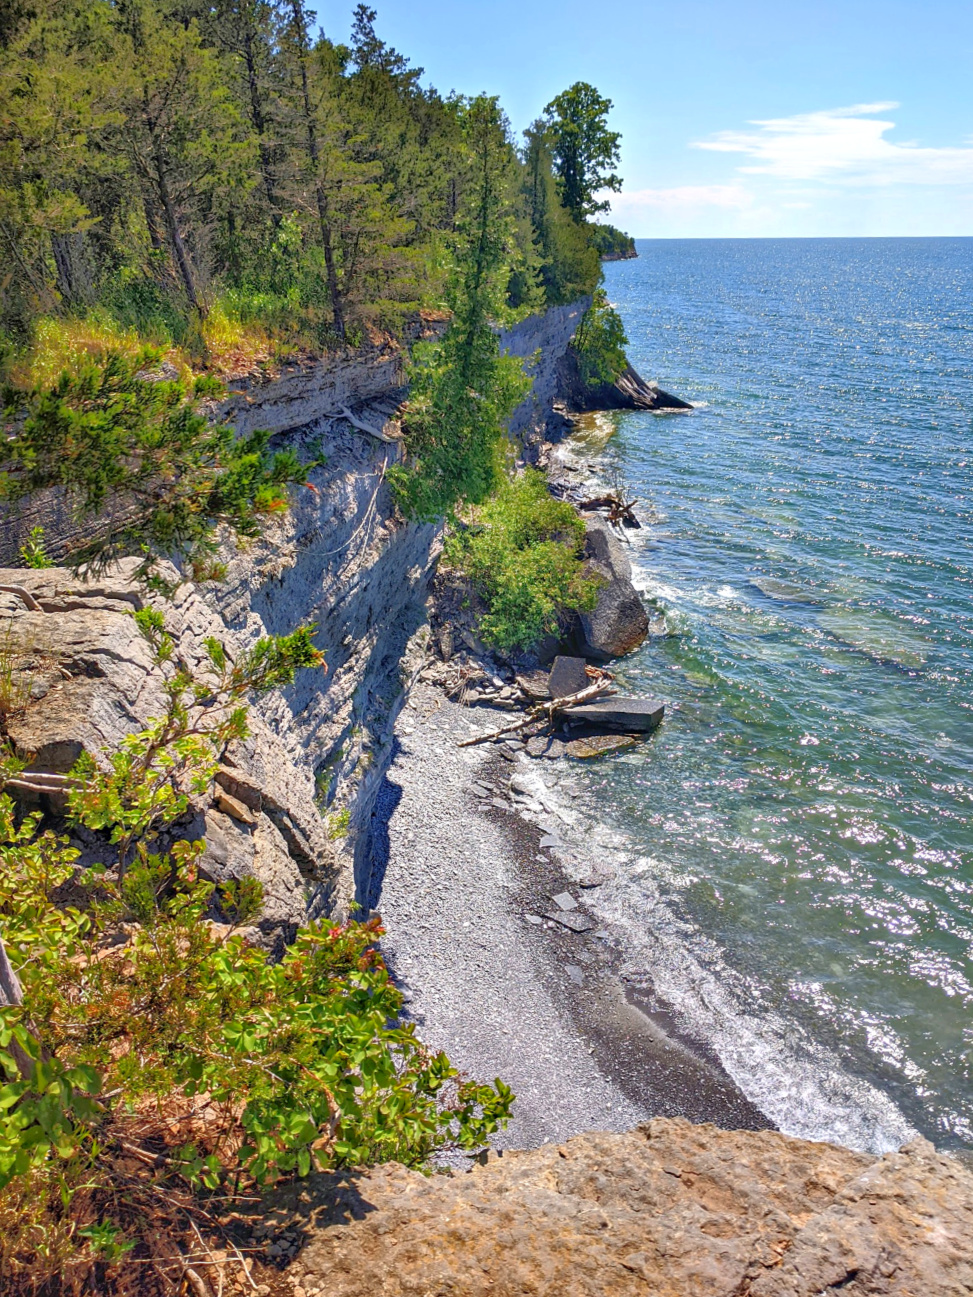 Robert G. Wehle State Park. High cliffs and the beach.